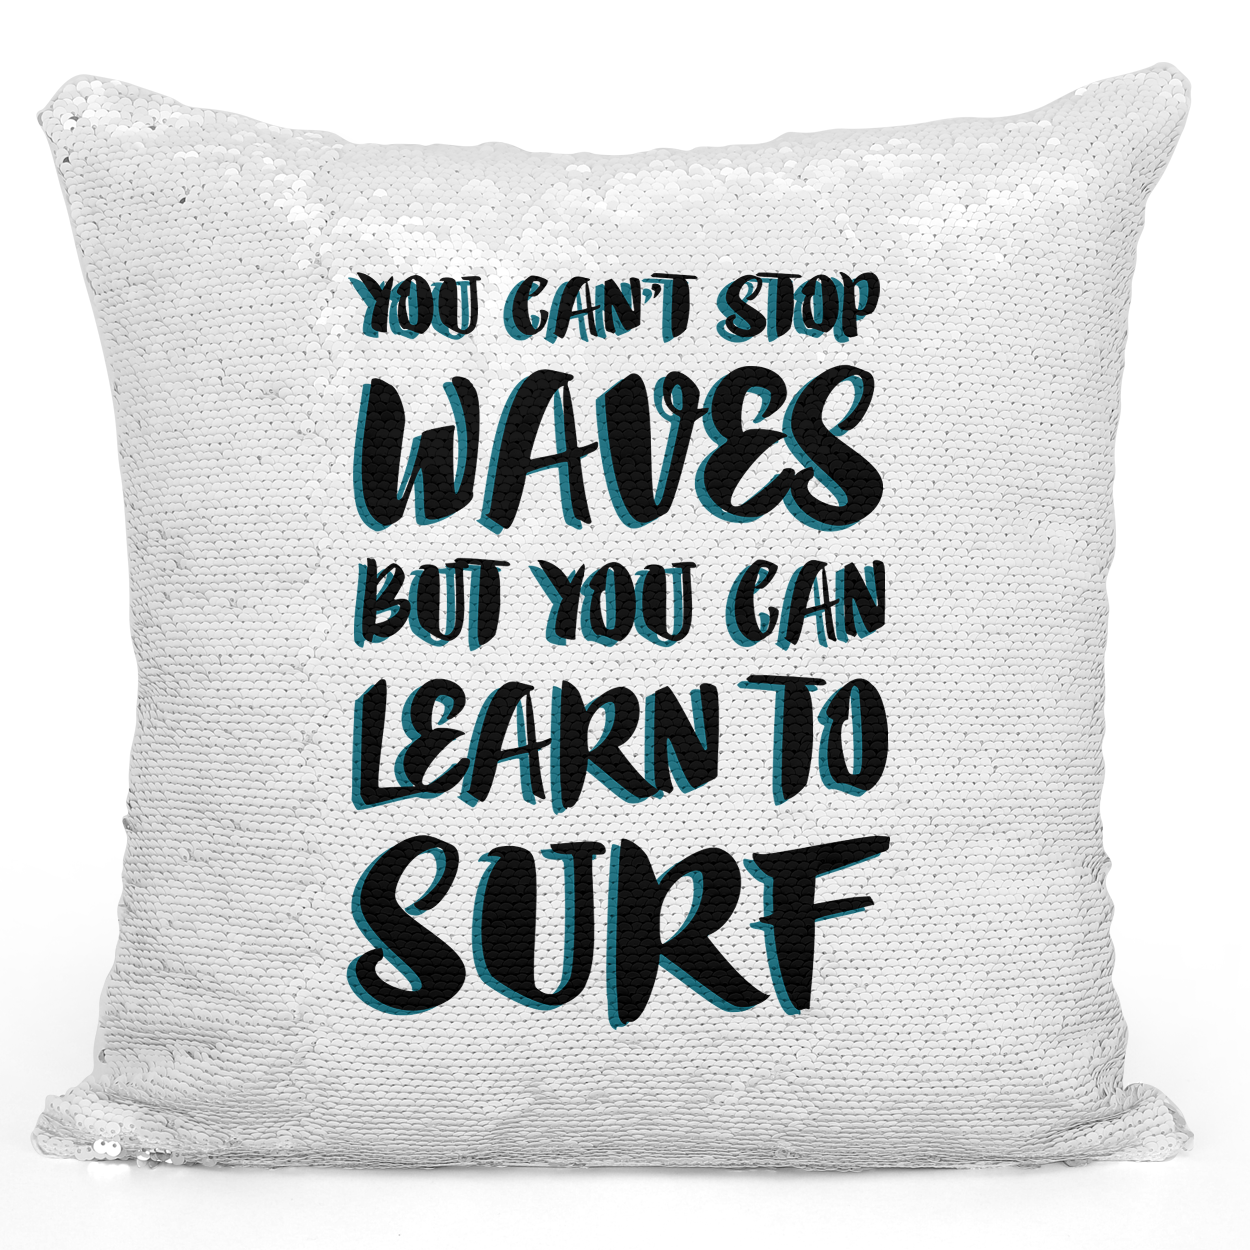 16x16 inch Sequin Throw Pillow Magic Flip Pillow Cant Stop Waves But Learn To Surf Motivational Quote Pillow Loud Universe